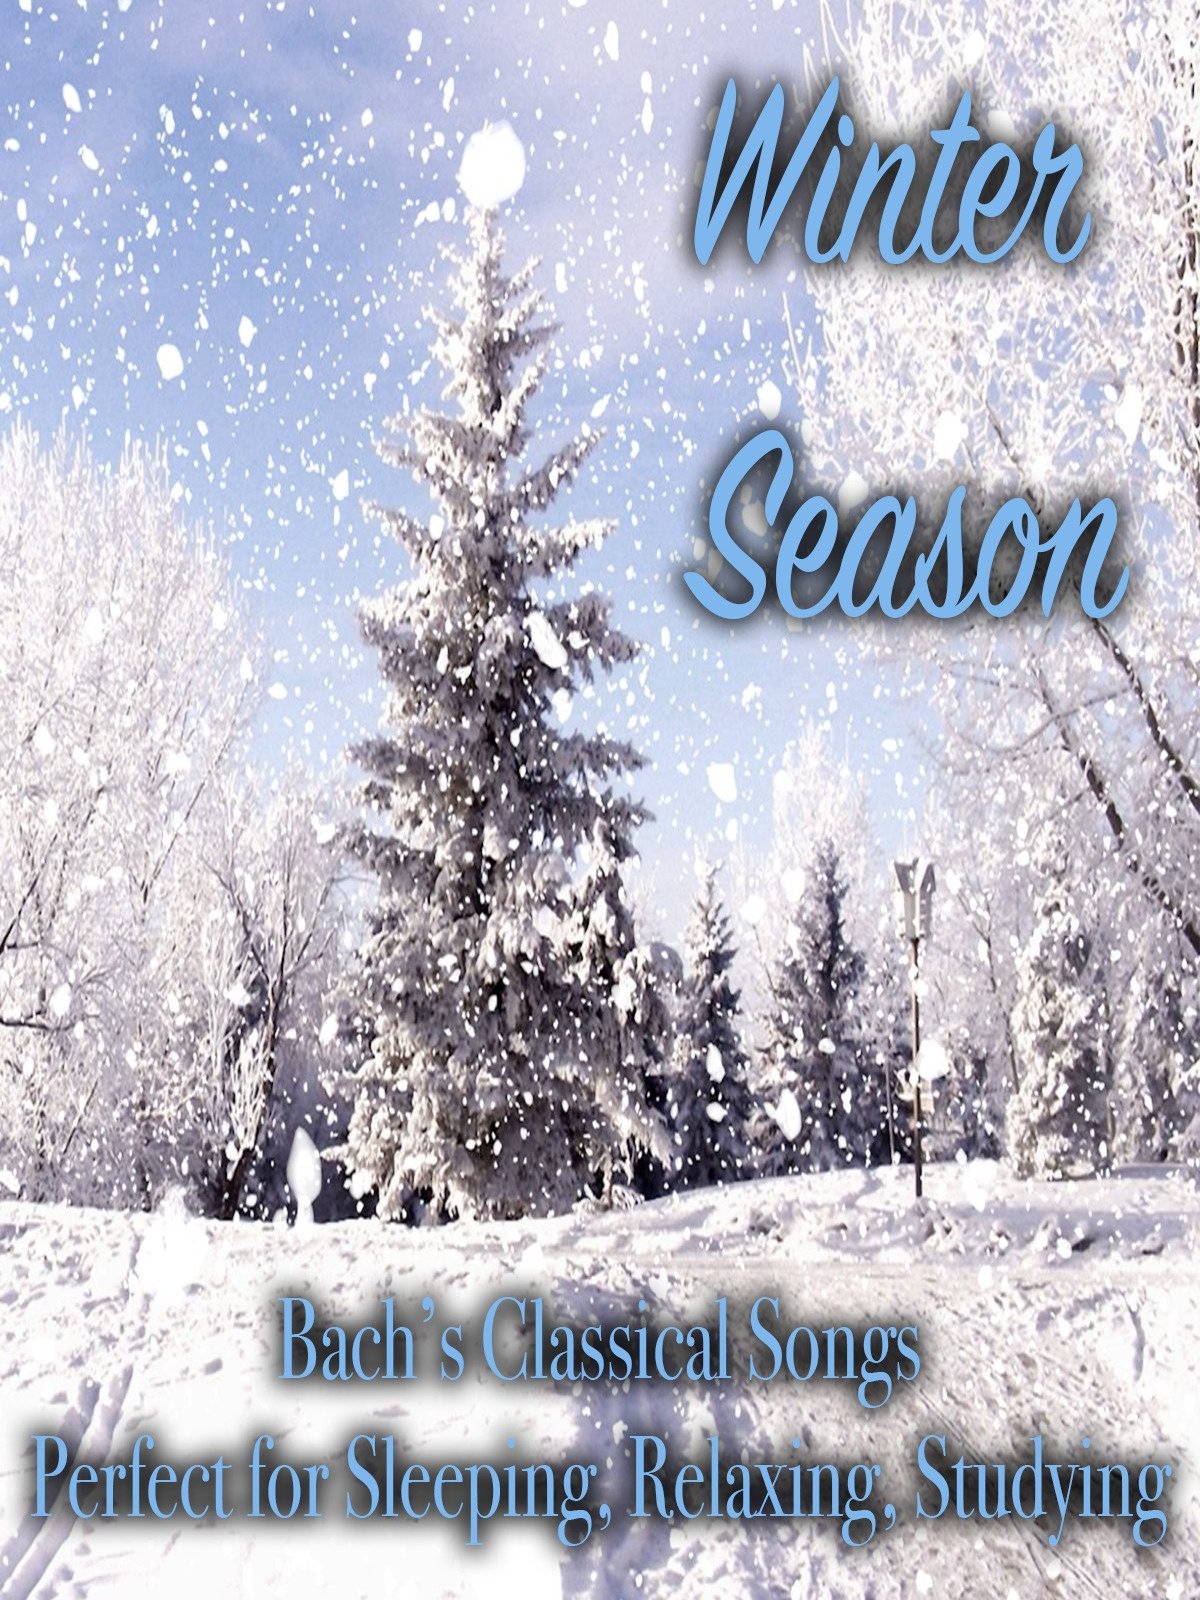 Winter Season Bach's Classical Songs Perfect for Sleeping, Relaxing, and Studying on Amazon Prime Instant Video UK